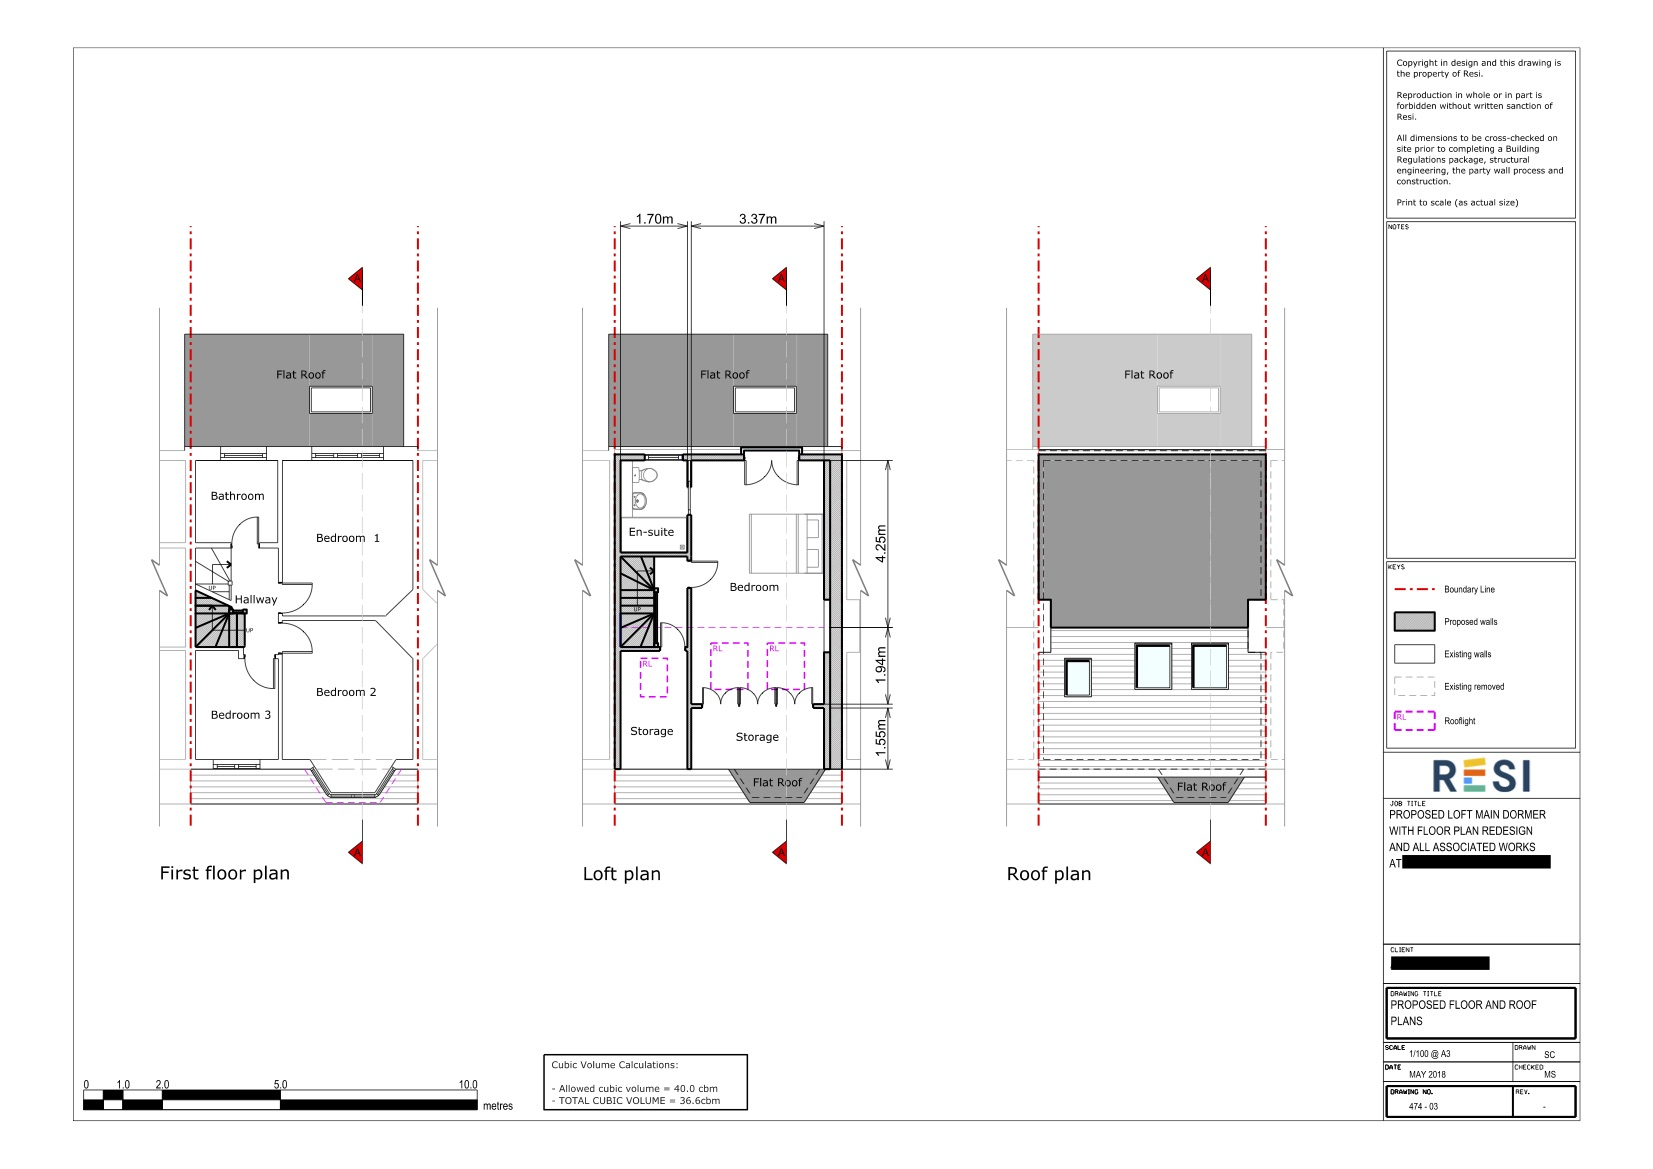 Architectural drawings 38   first floor and loft plans